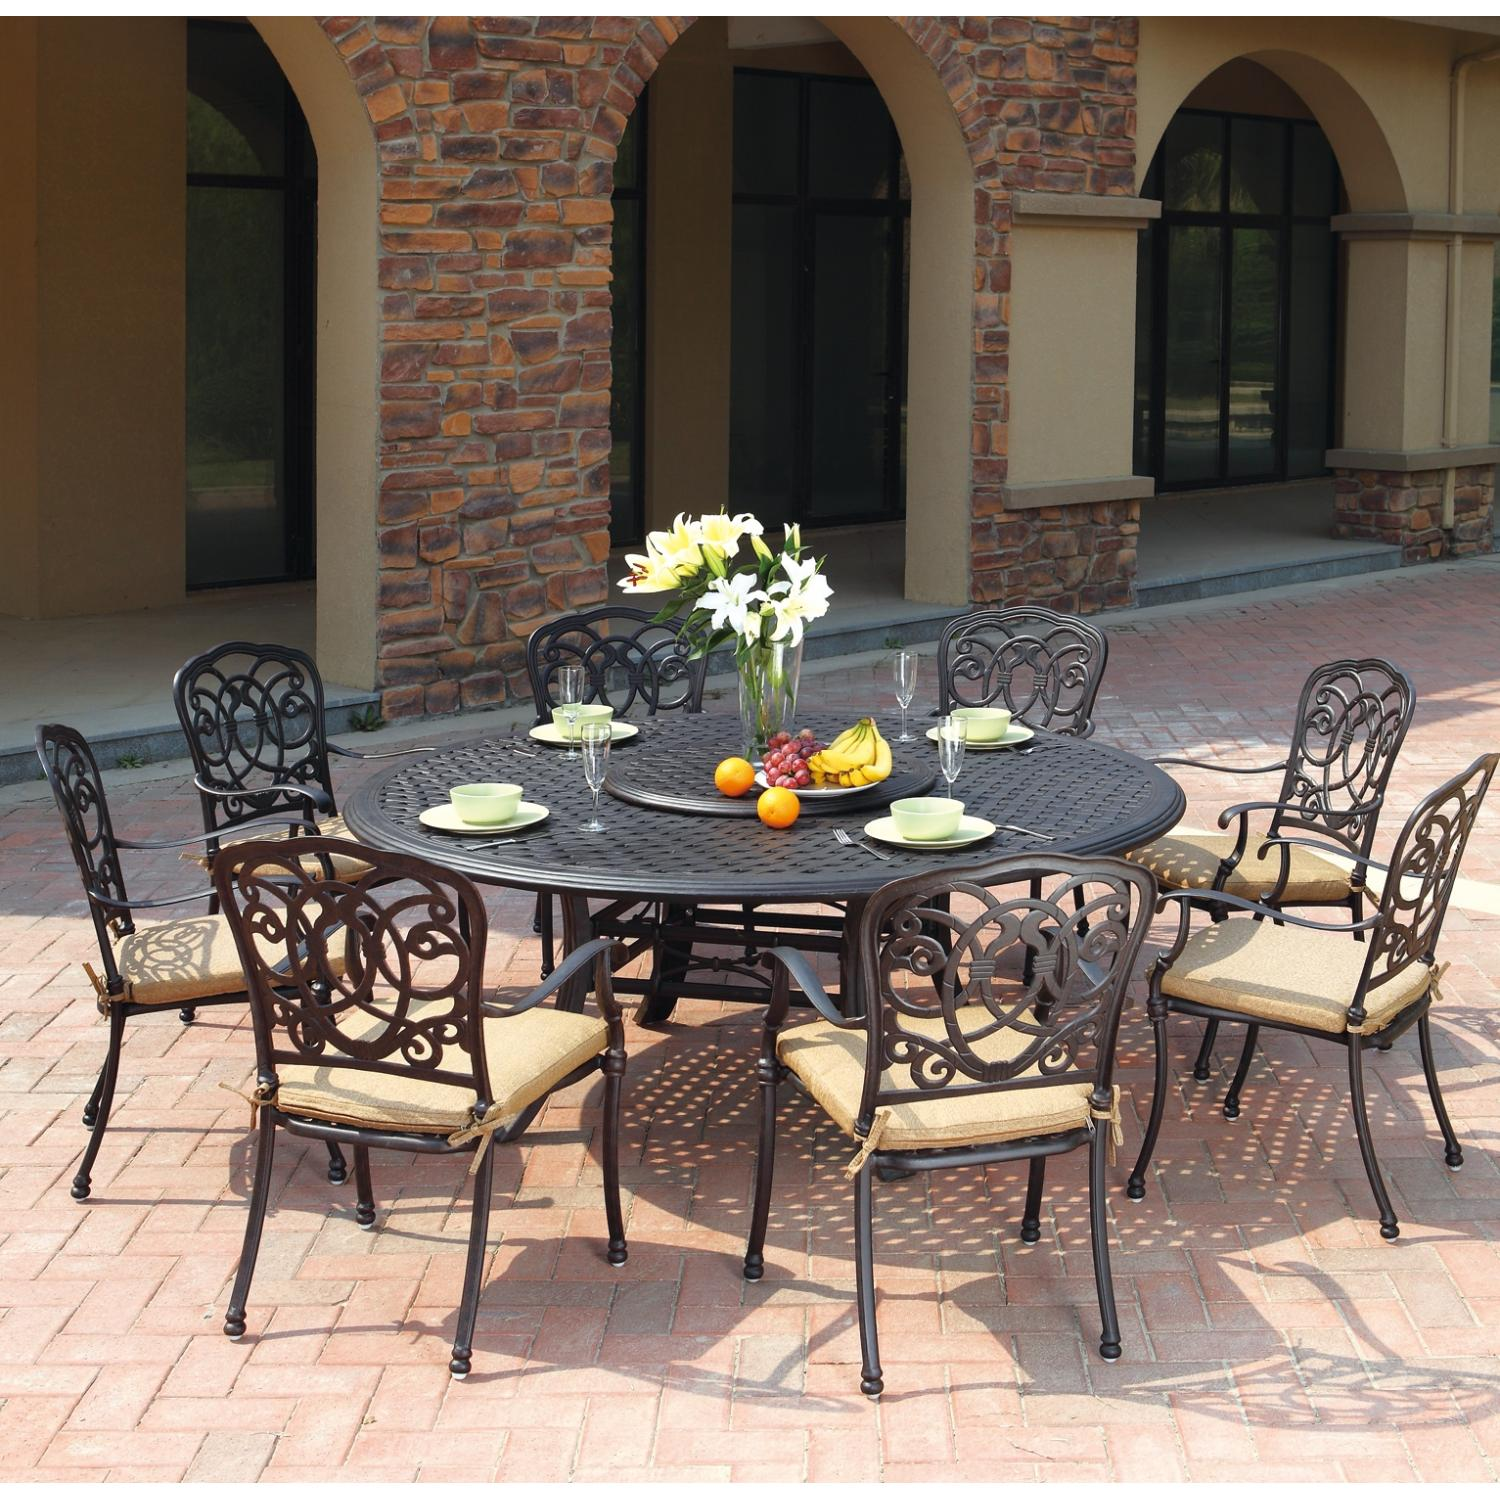 & Patio Furniture Dining Set Cast Aluminum 71u201d Round Table 10pc Florence